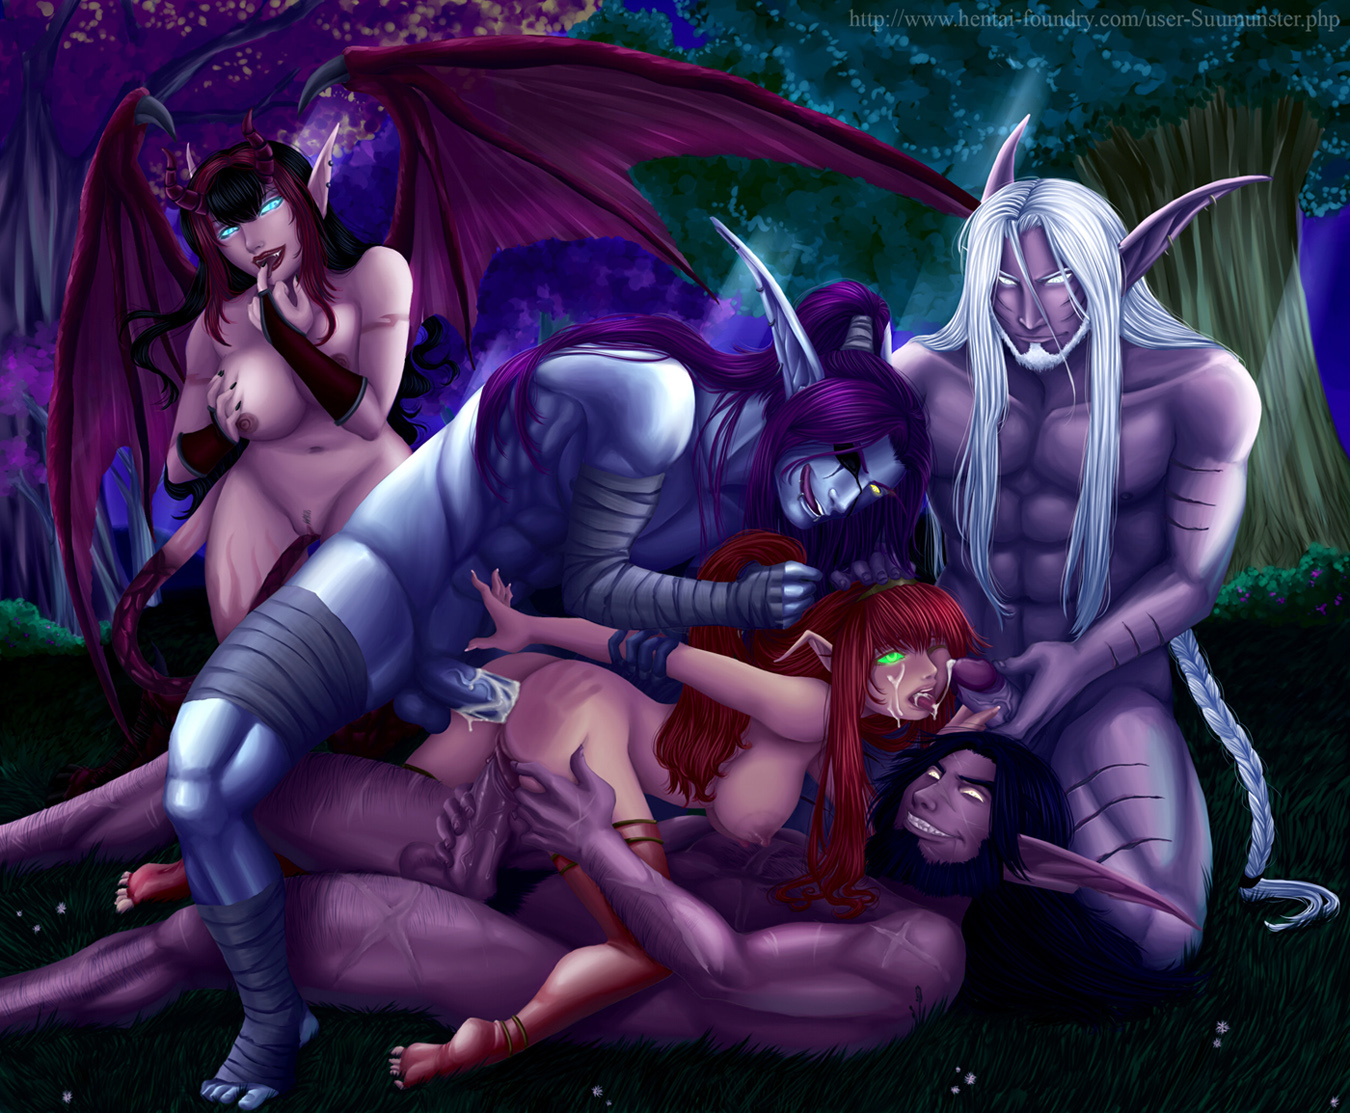 World of warcraft porn videos night elves hentai scenes